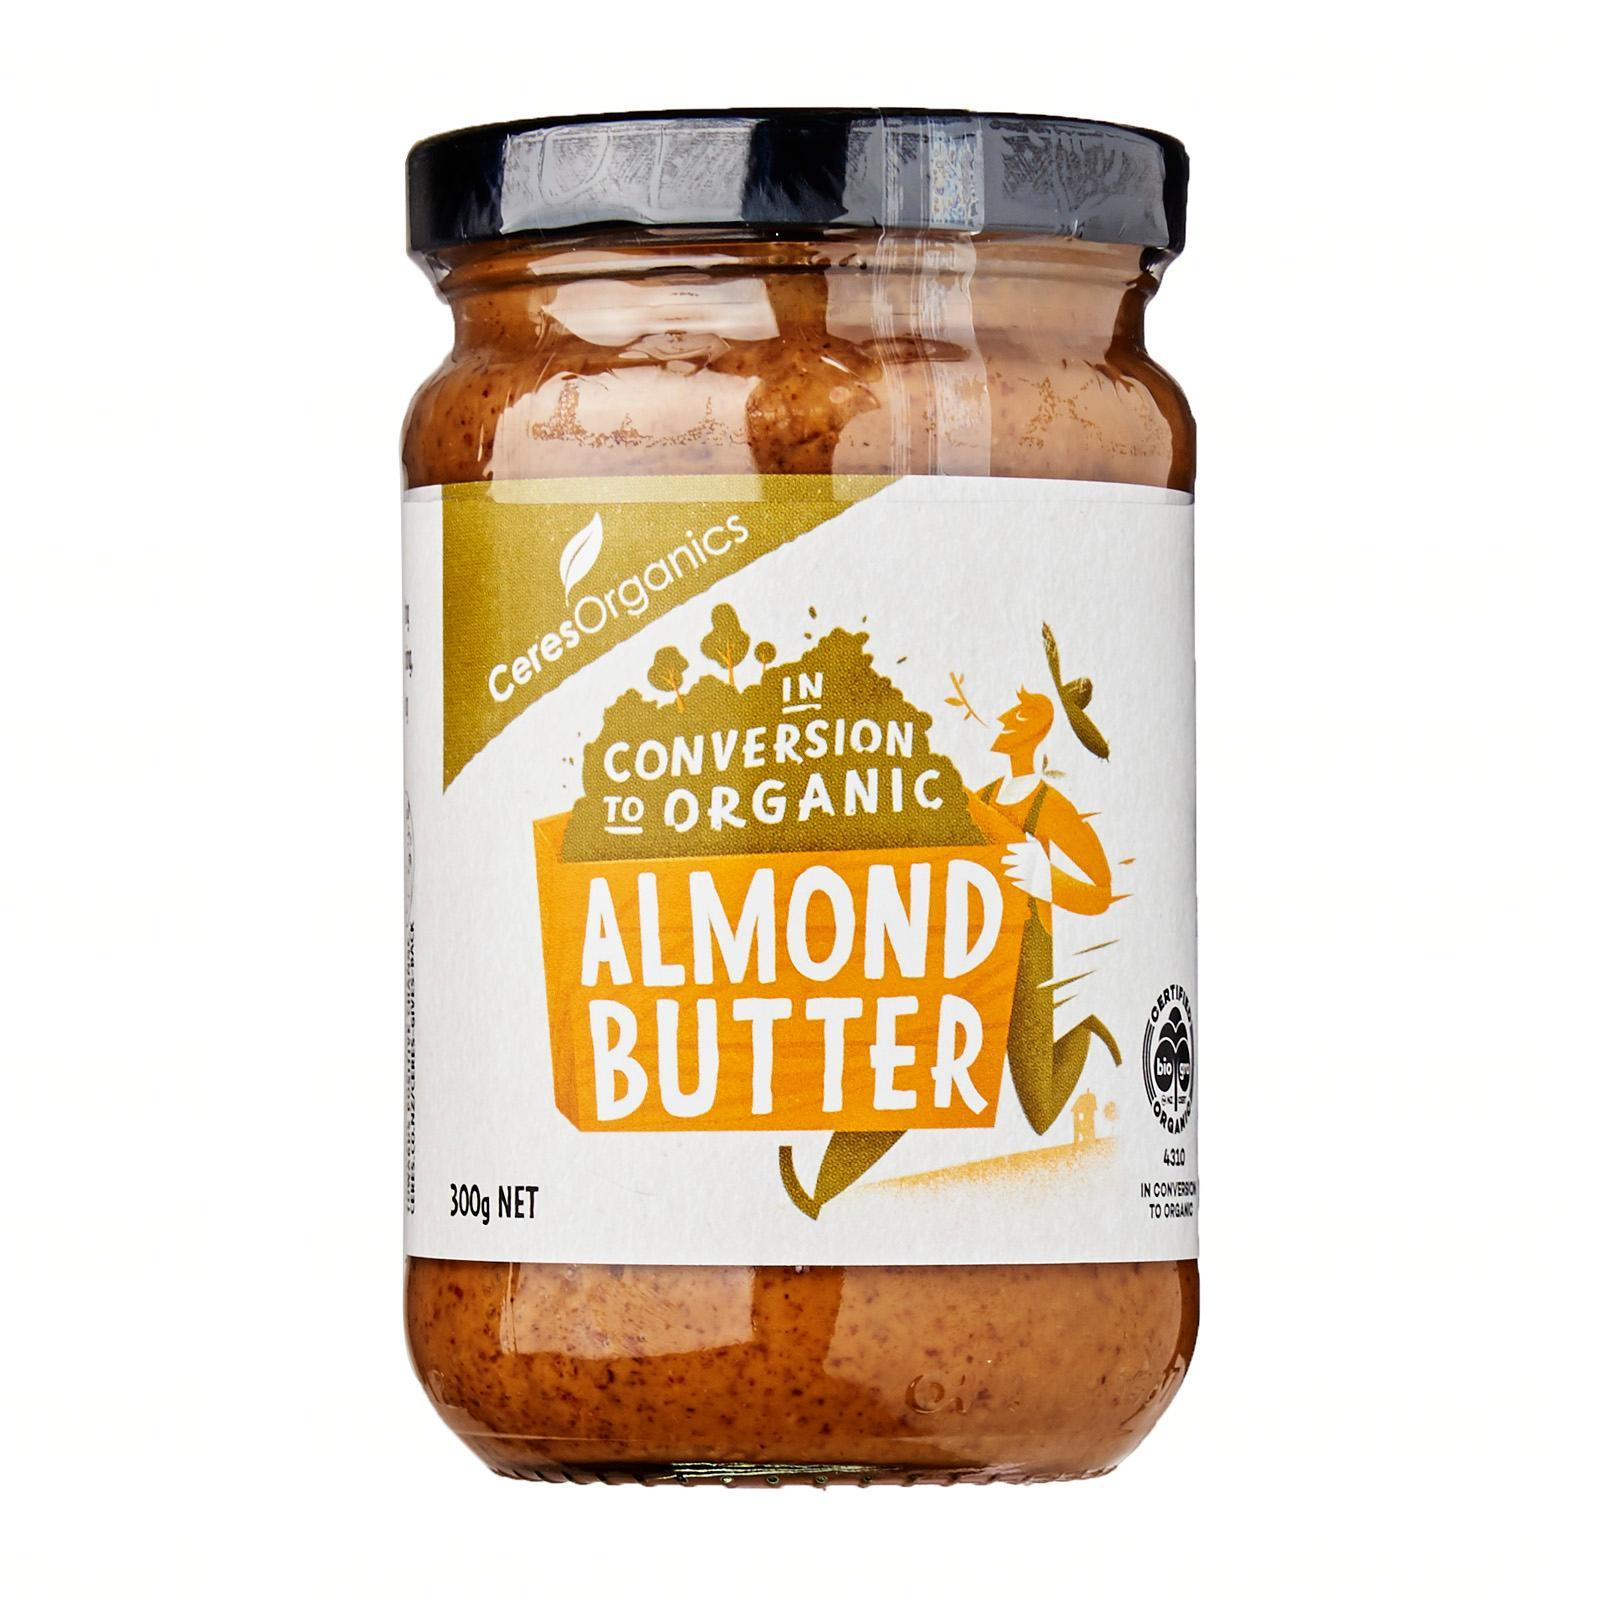 CERES ORGANICS Almond Butter - by Optimo Foods